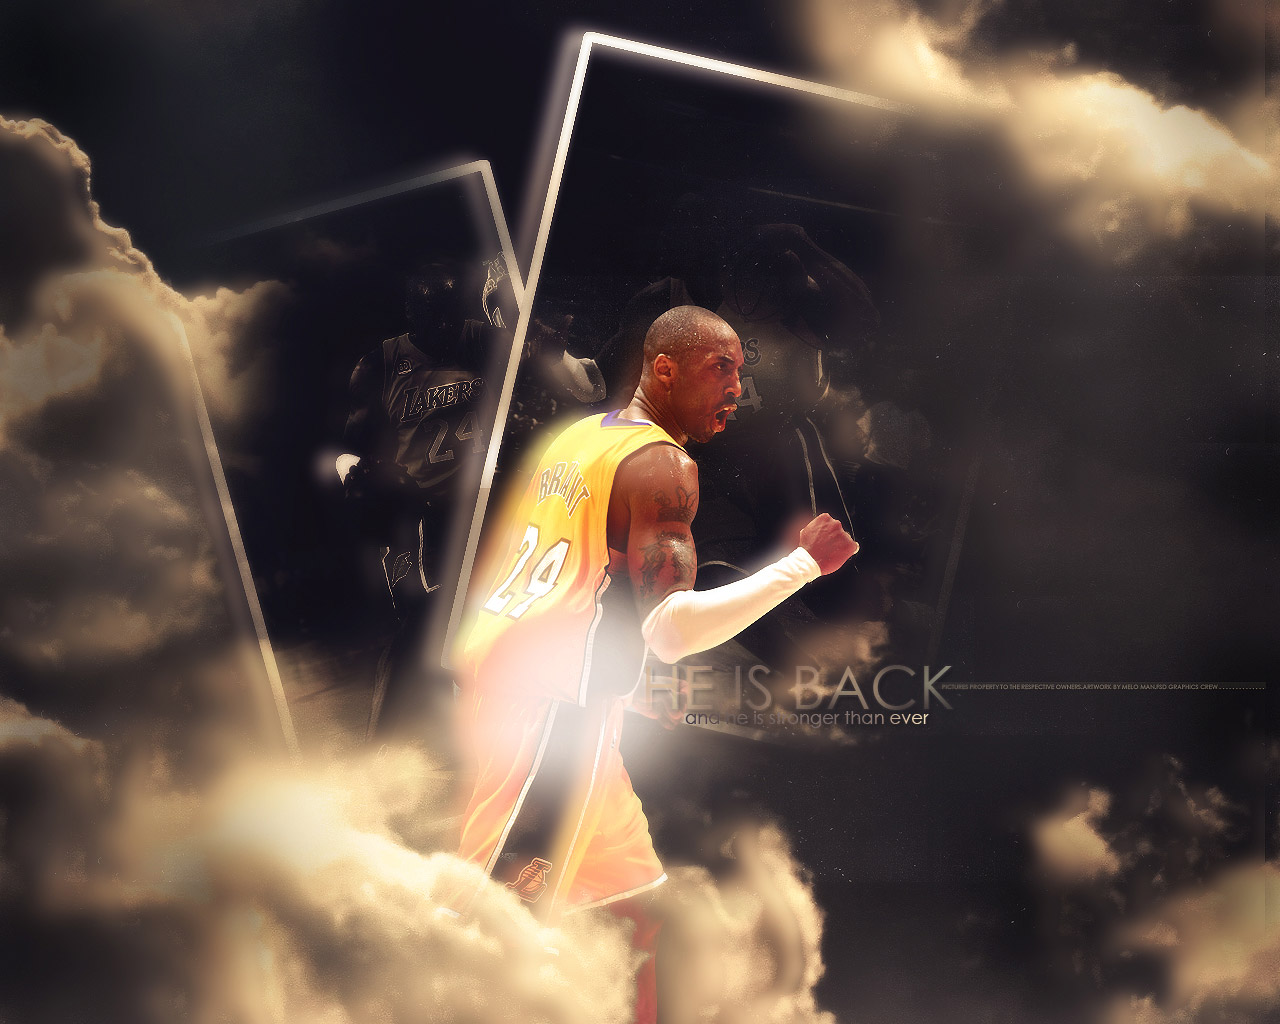 Kobe Bryant Basketball Wallpapers For Android Kobe Bryant 1280x1024